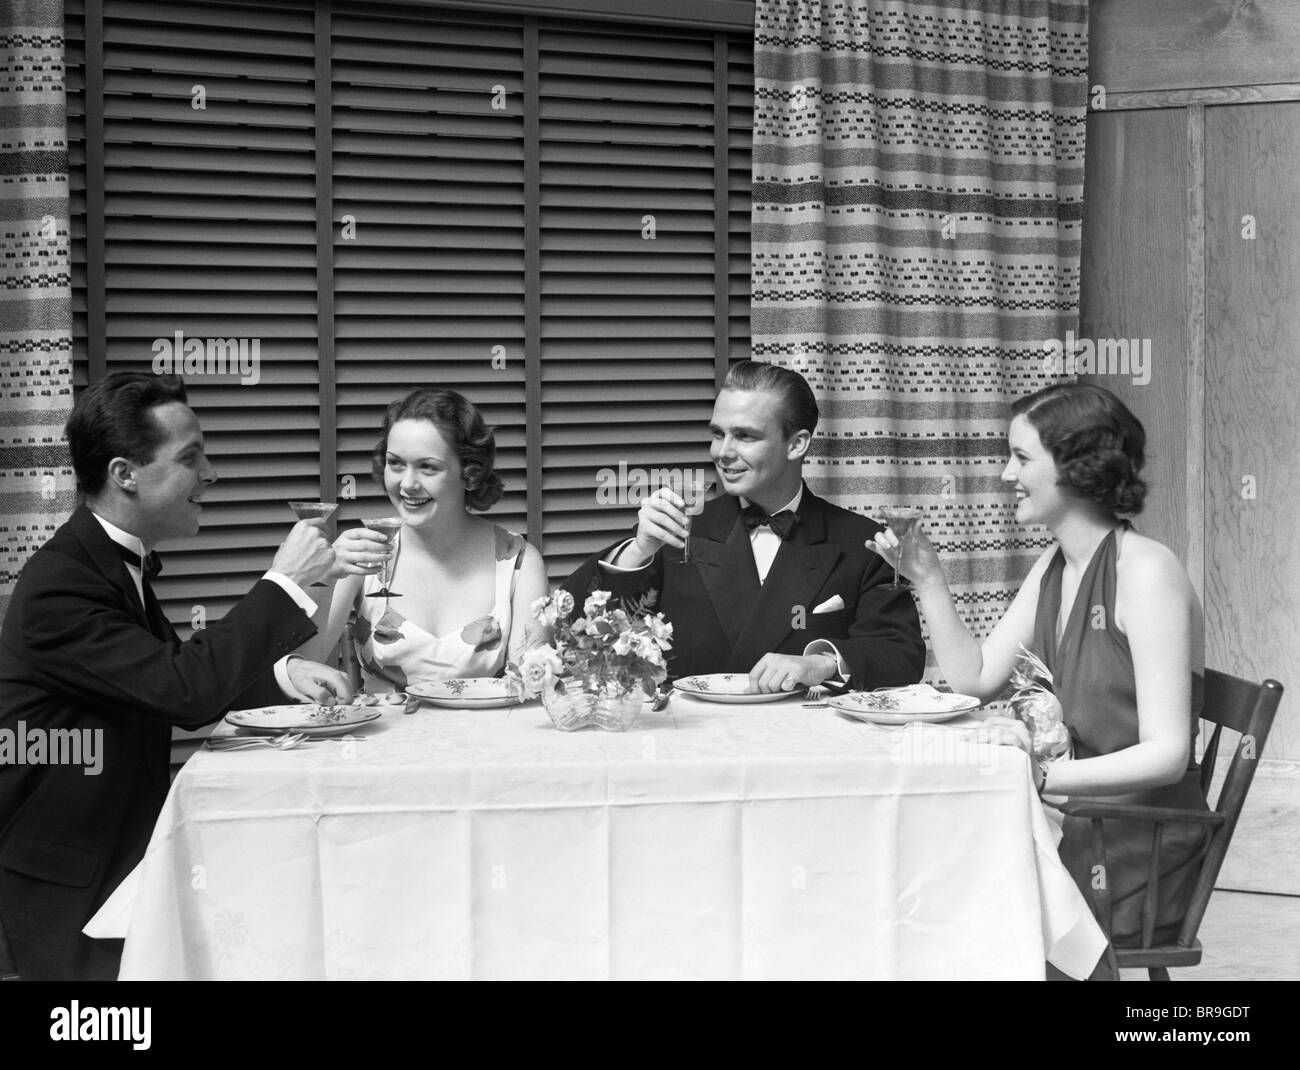 1930s DINNER PARTY TWO COUPLES IN FORMAL EVENING DRESS TOASTING - Stock Image